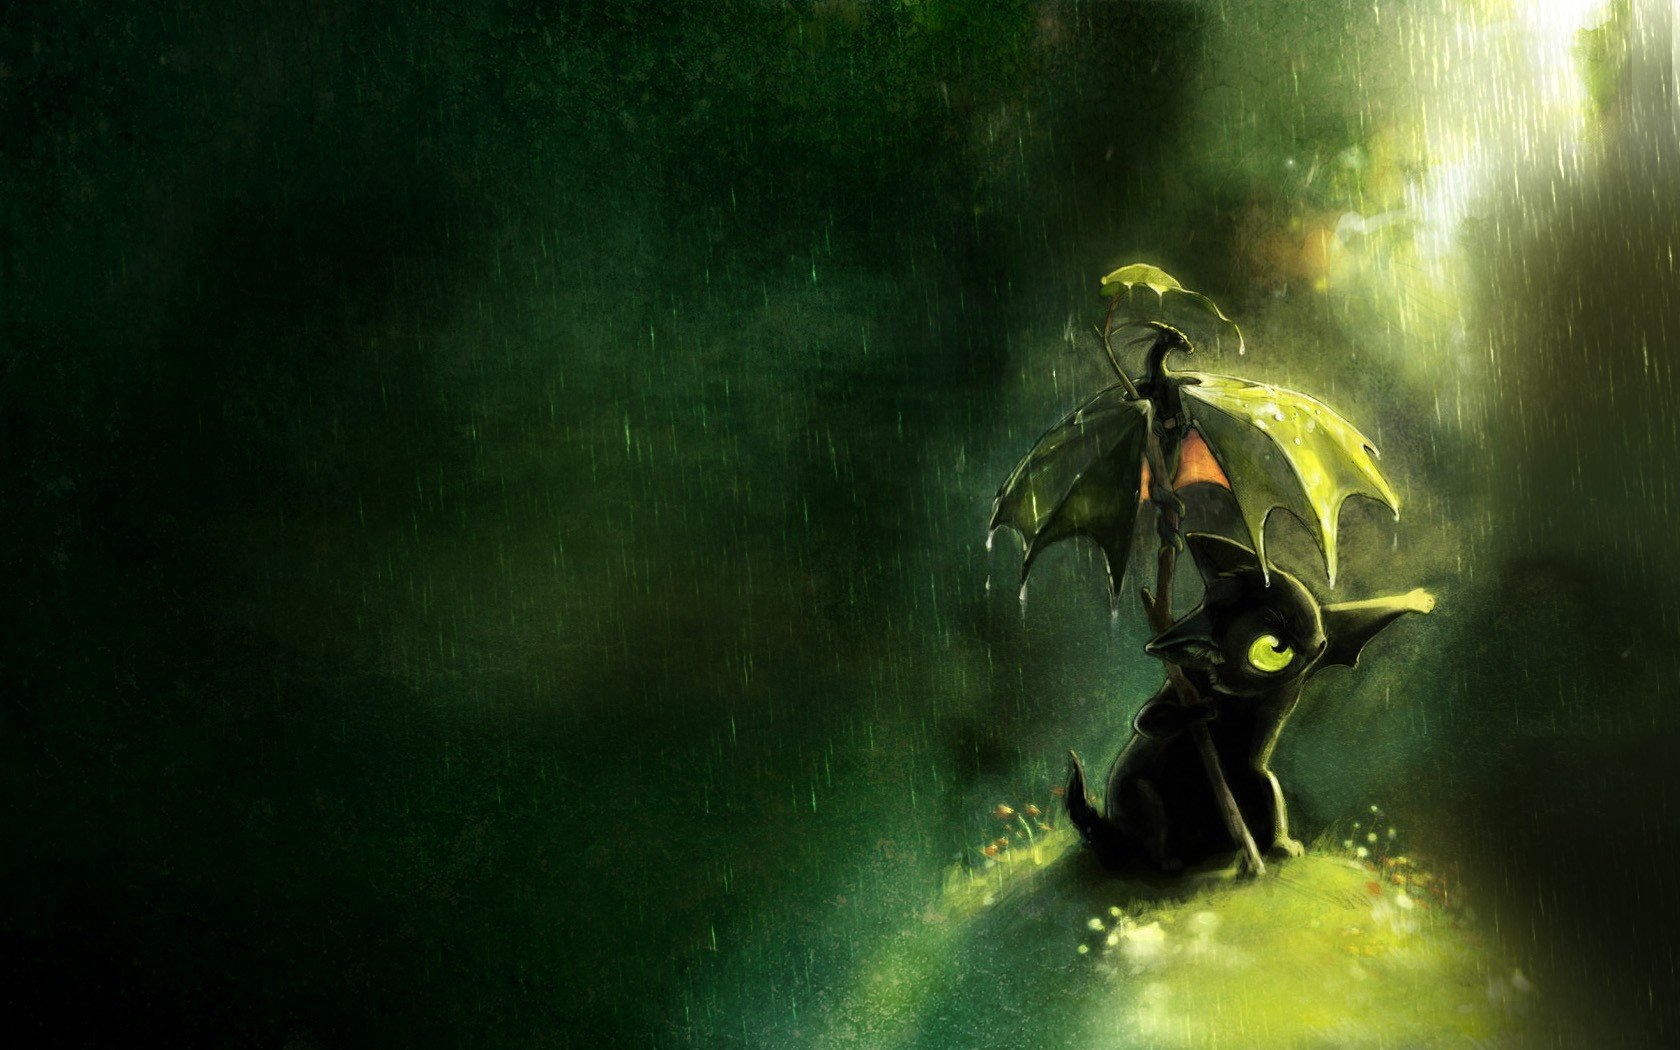 Toothless How To Train Your Dragon Wallpapers 1680x1050 Desktop Backgrounds